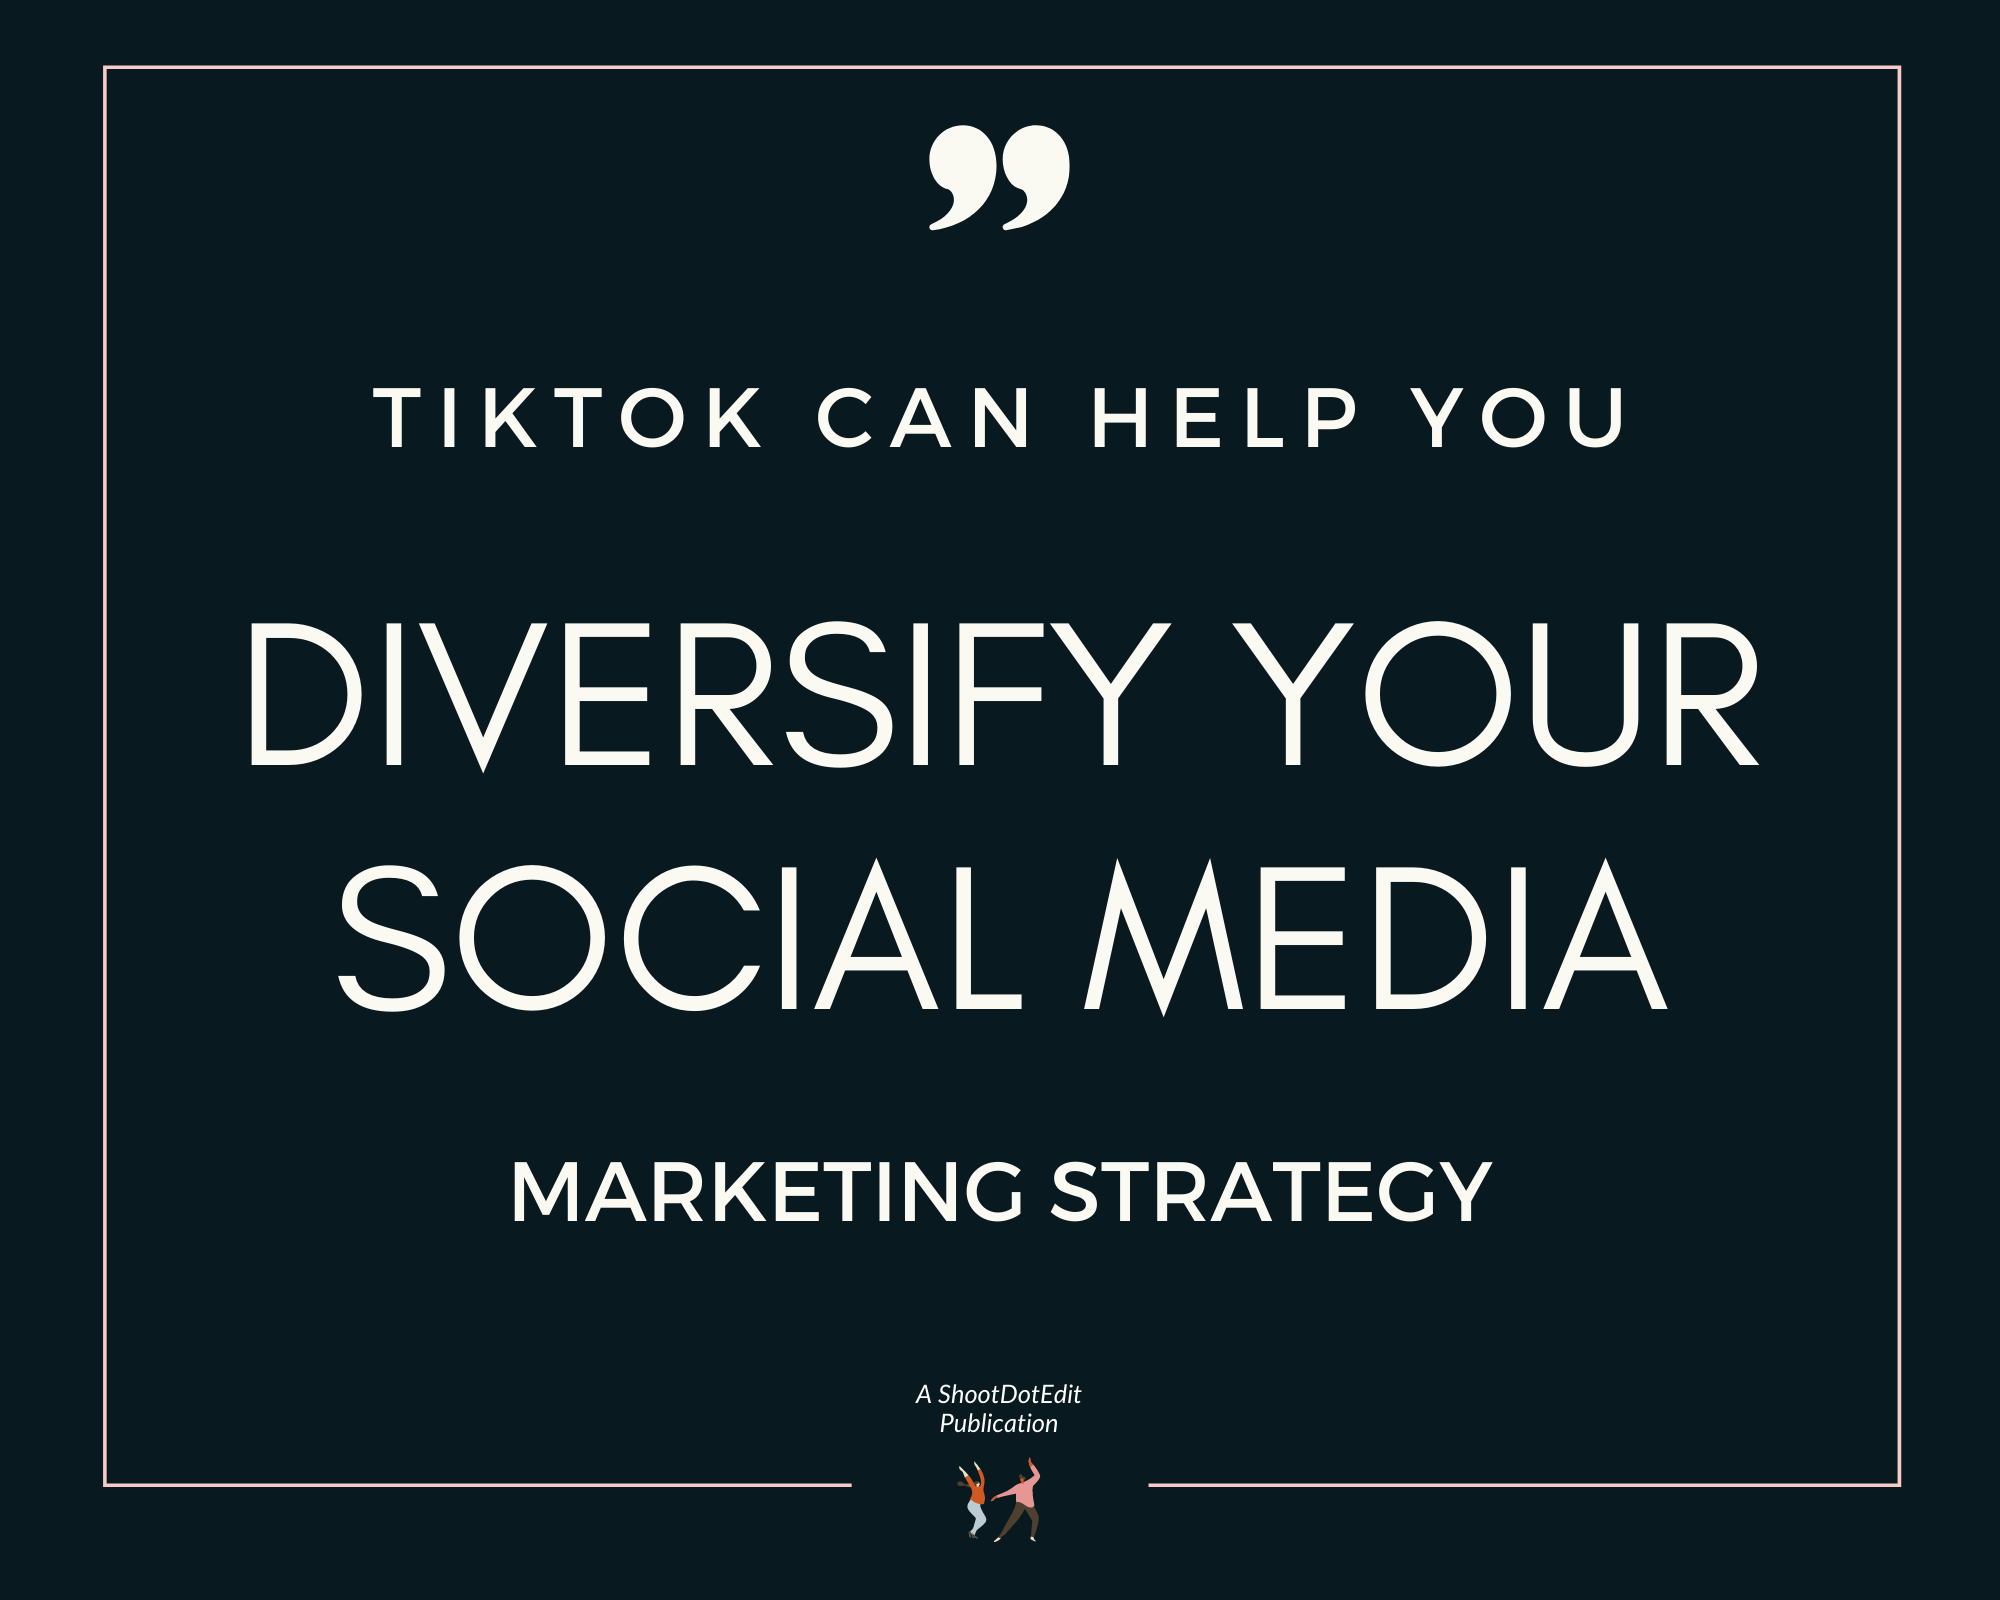 Infographic stating TikTok can help you diversify your social media marketing strategy